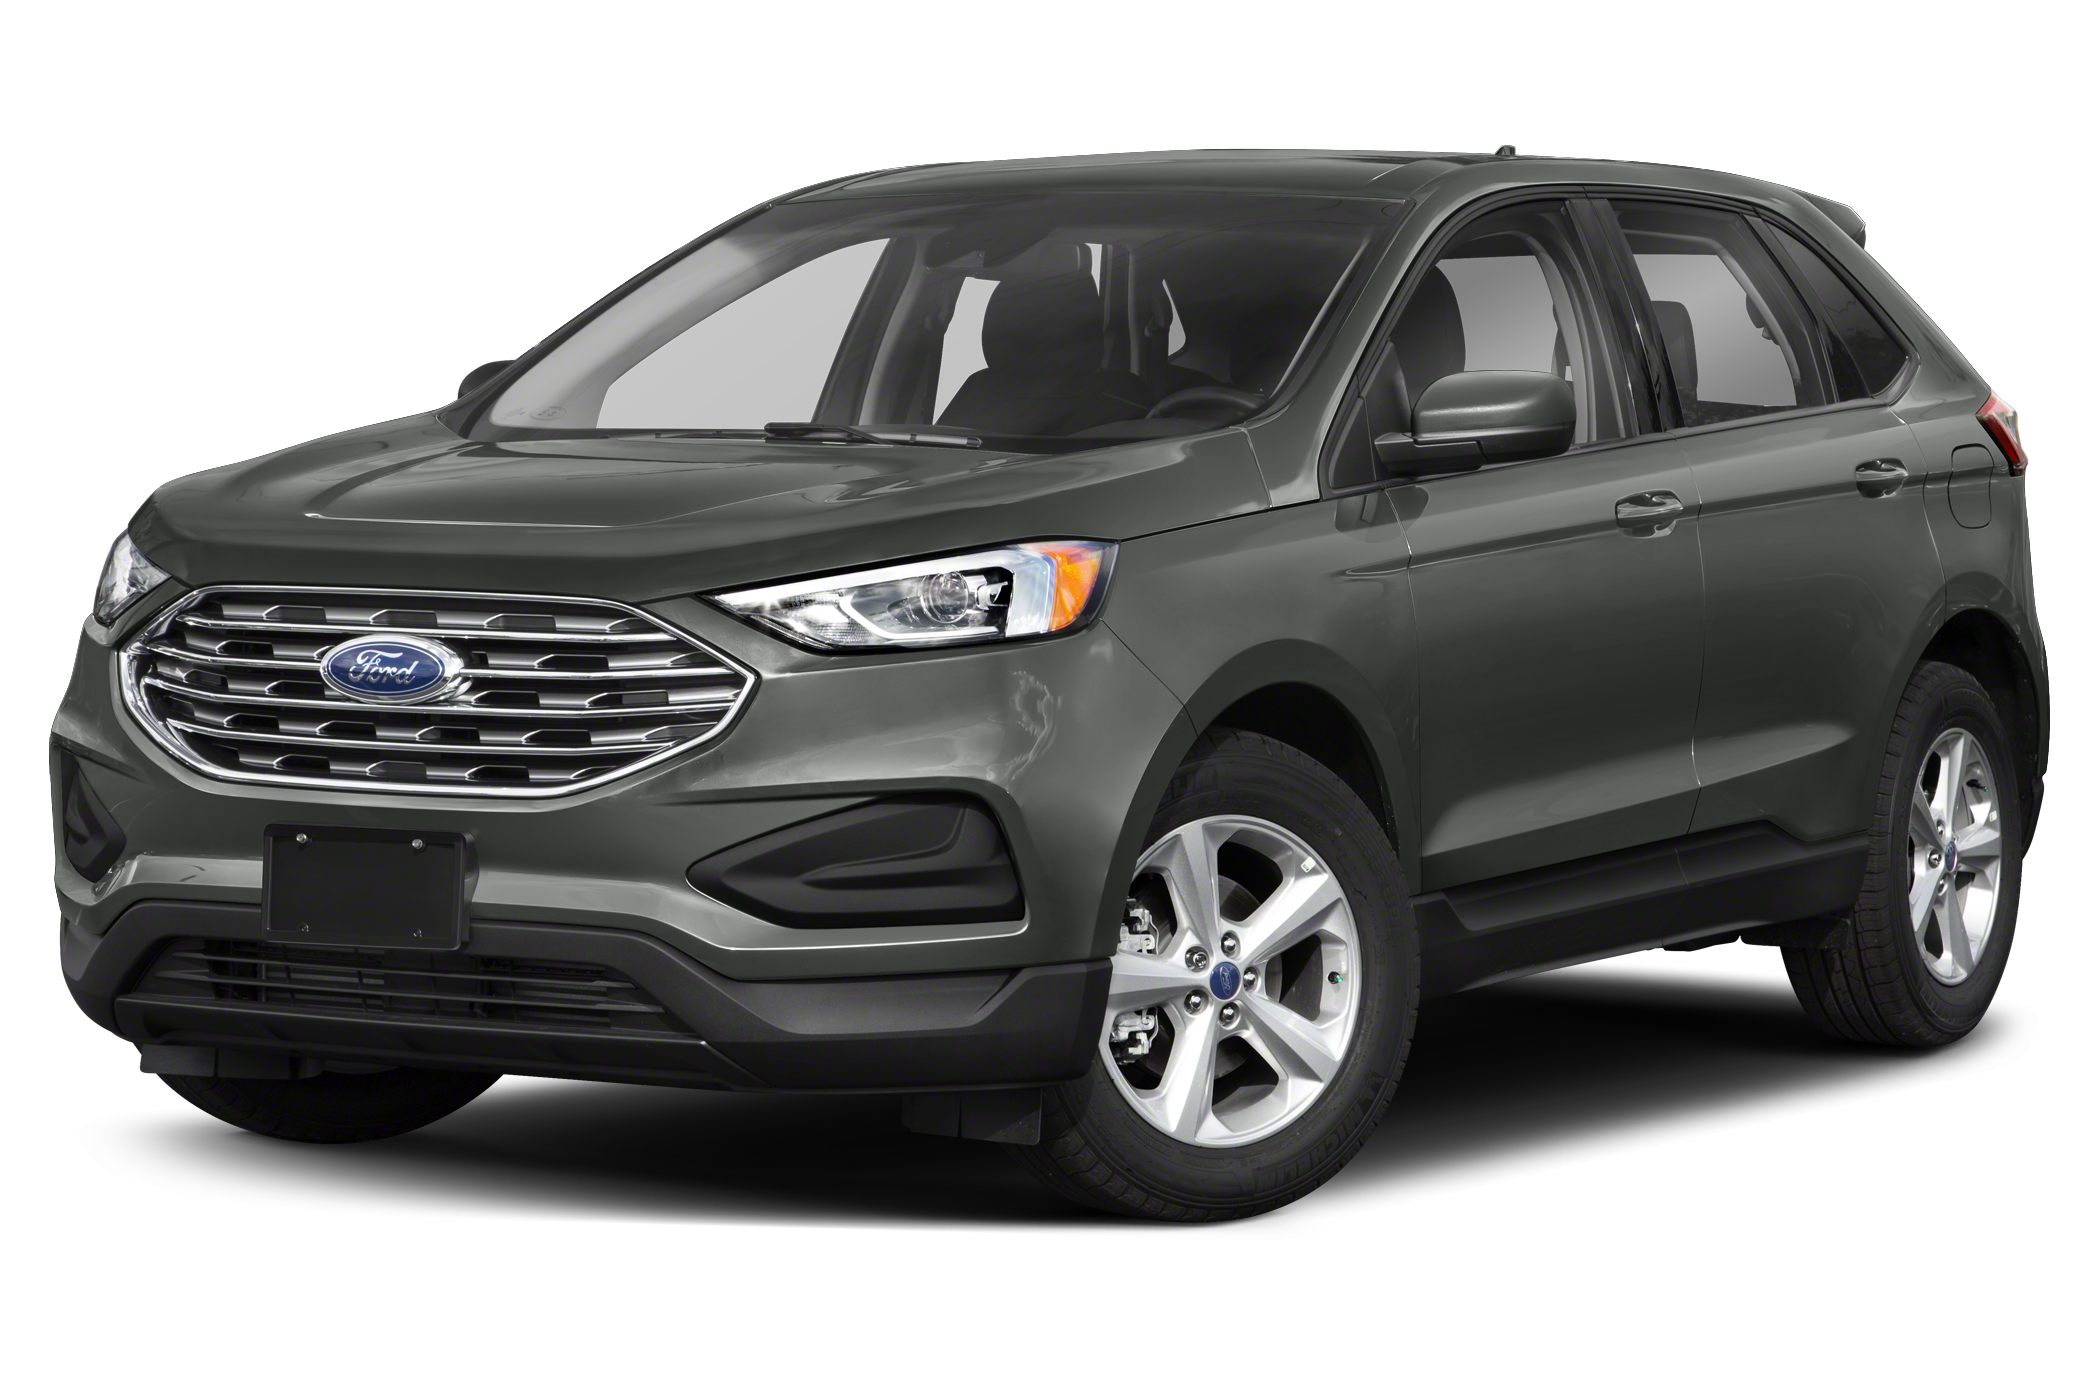 2020 Ford Edge Rebates And Incentives